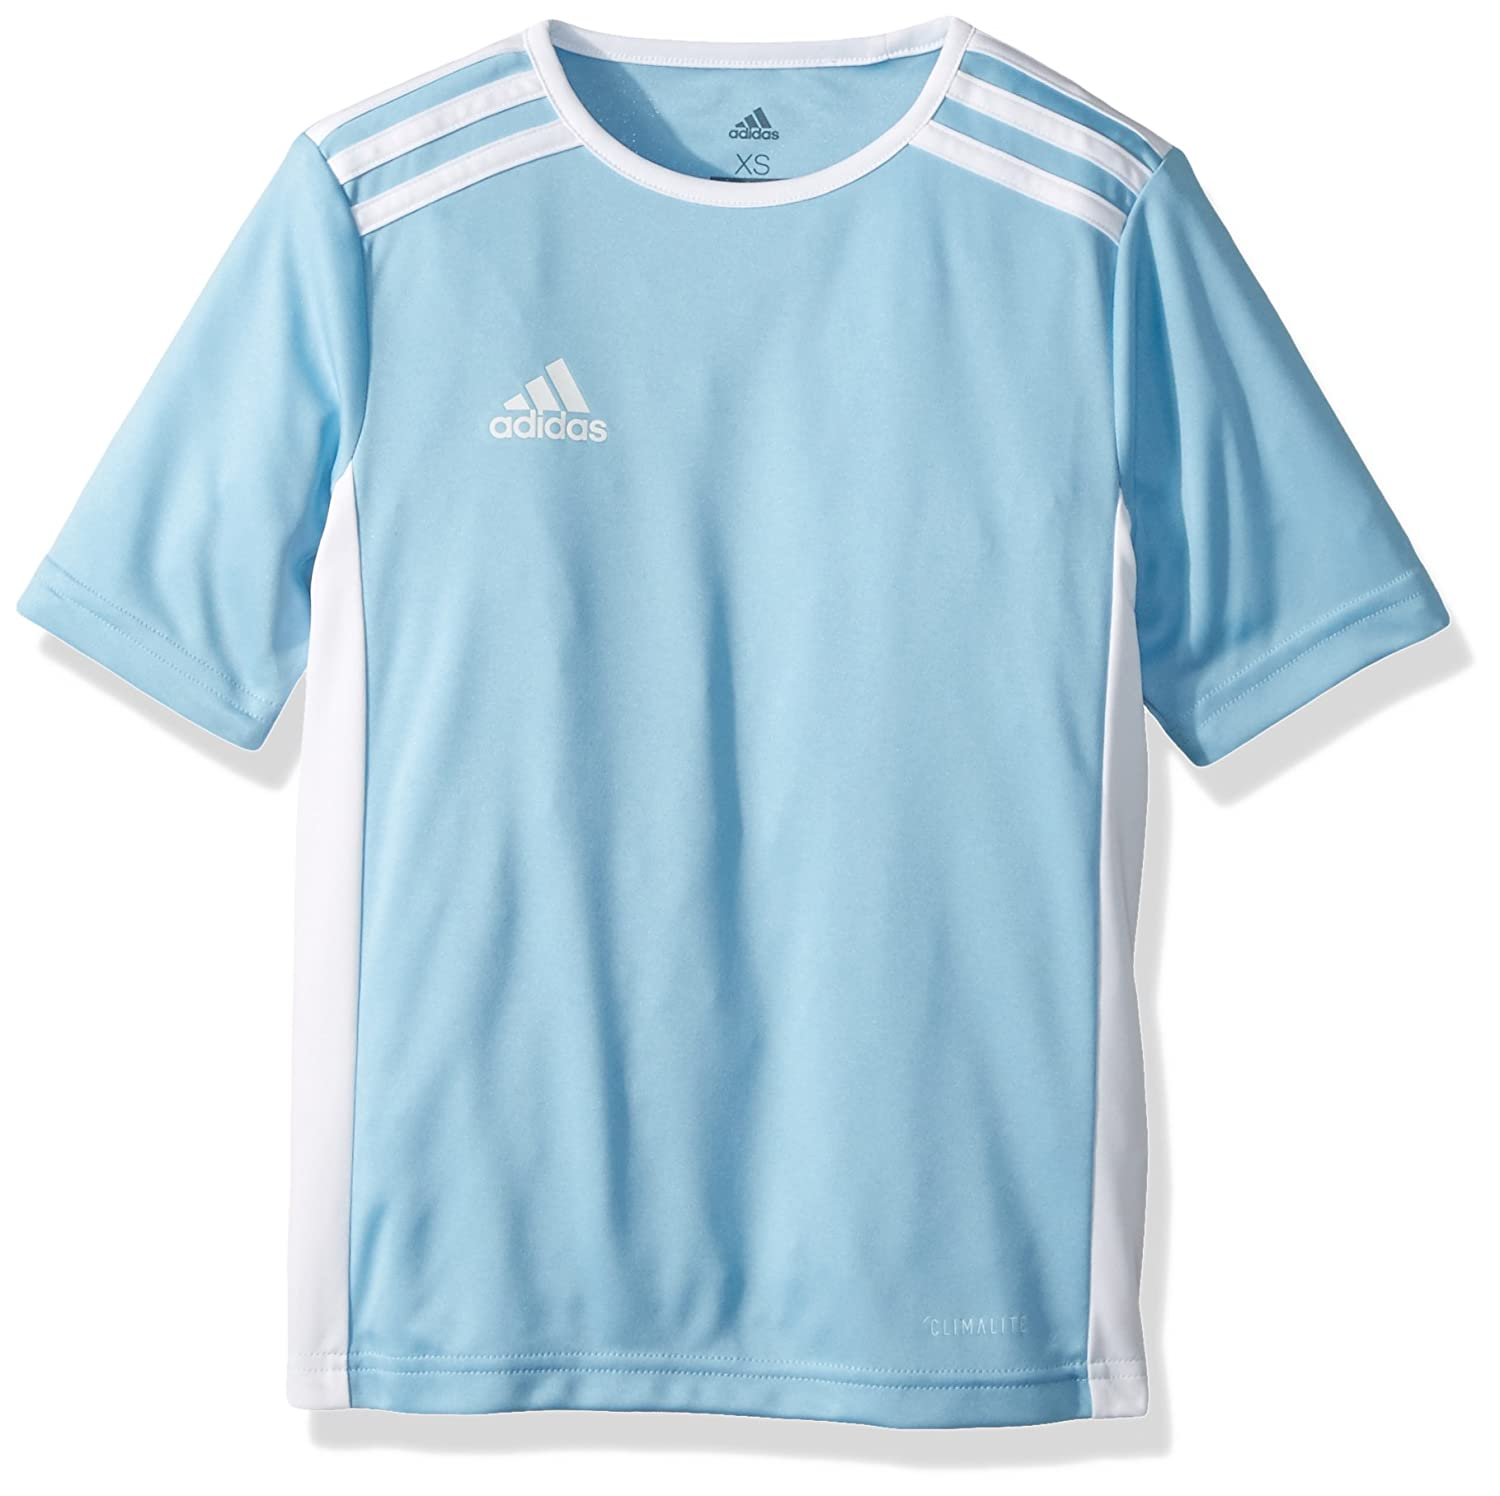 Adidas エントラーダジャージー 男子用 サッカー 18。 B07457F1MM 3S|Clear Blue/White Clear Blue/White 3S